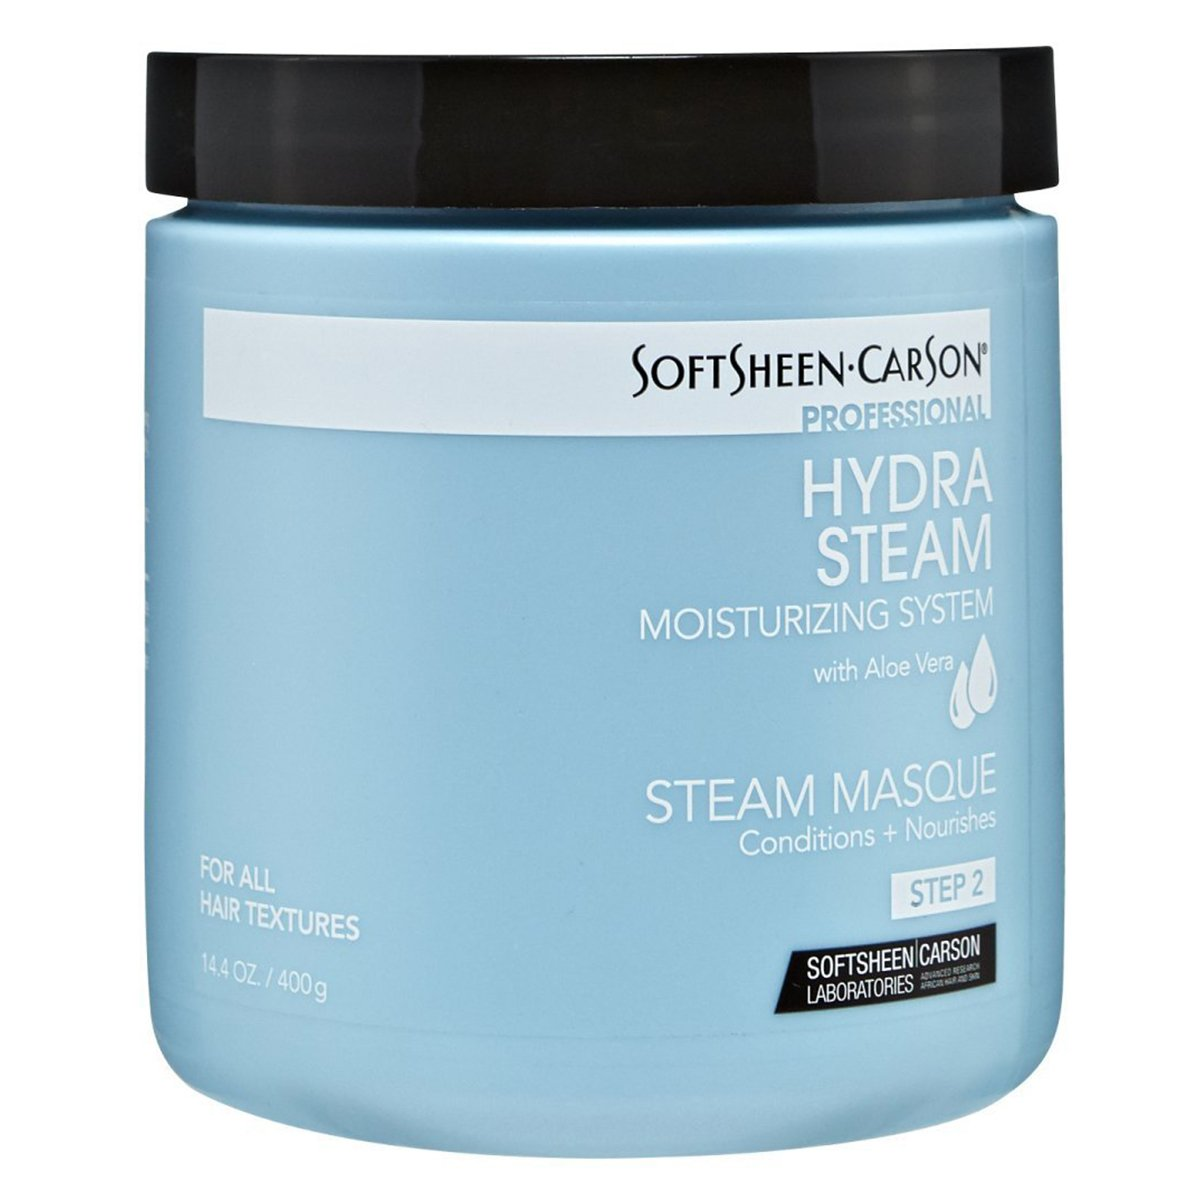 [SoftSheen Carson] HYDRA STEAM MOISTURIZING SYSTEM STEAM MASQUE 14.4OZ